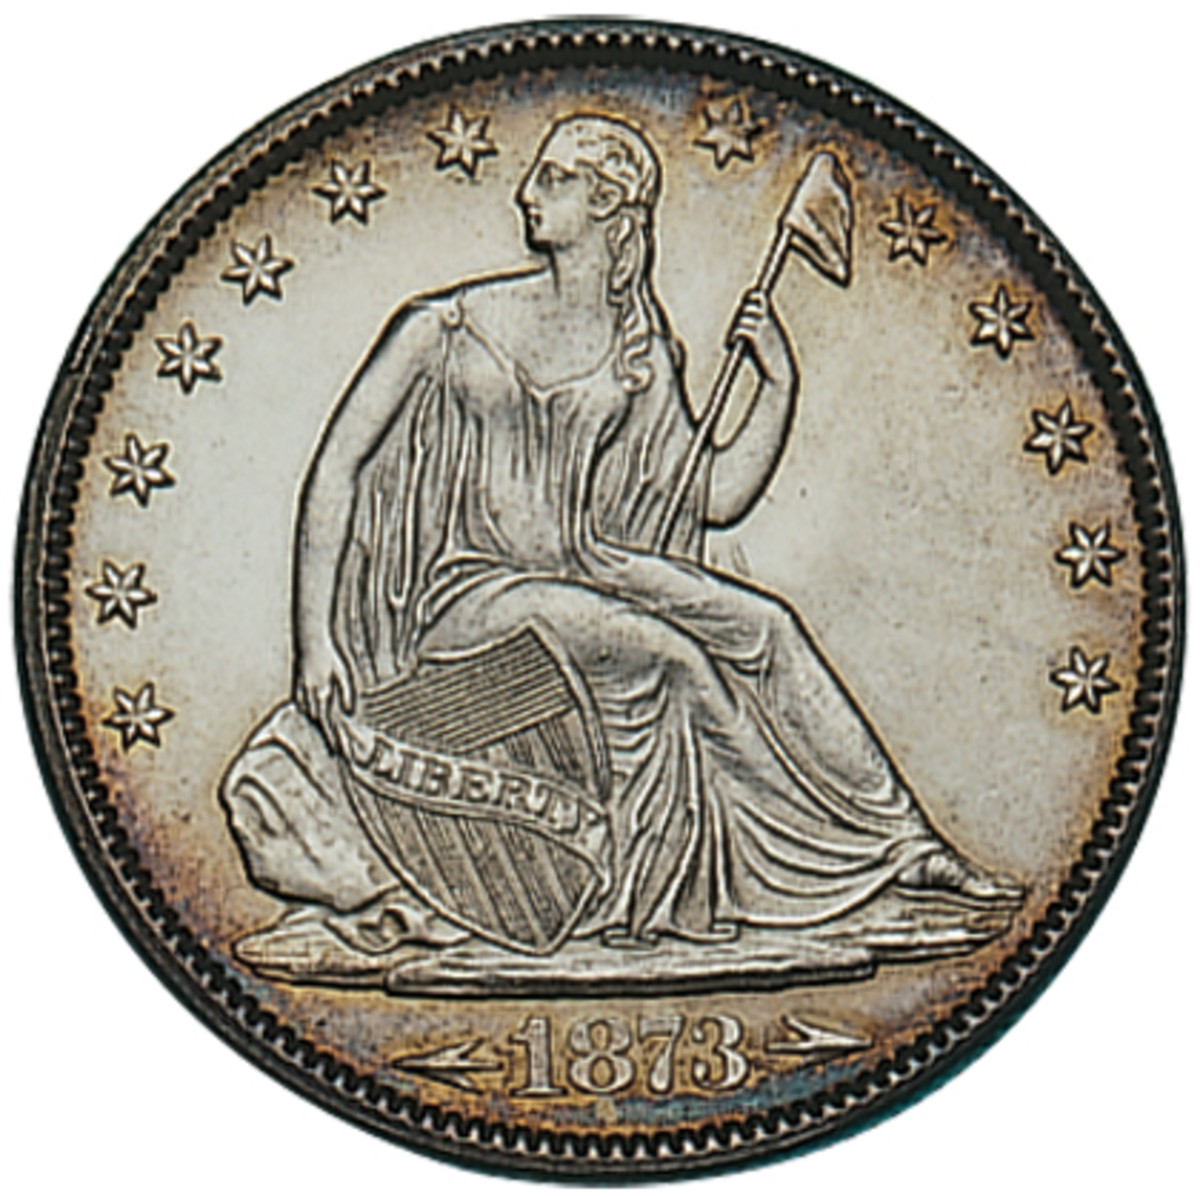 A coin store can serve a niche market in coin collecting - say, by focusing on Seated Liberty coinage - and expand both its customer base and national presence.